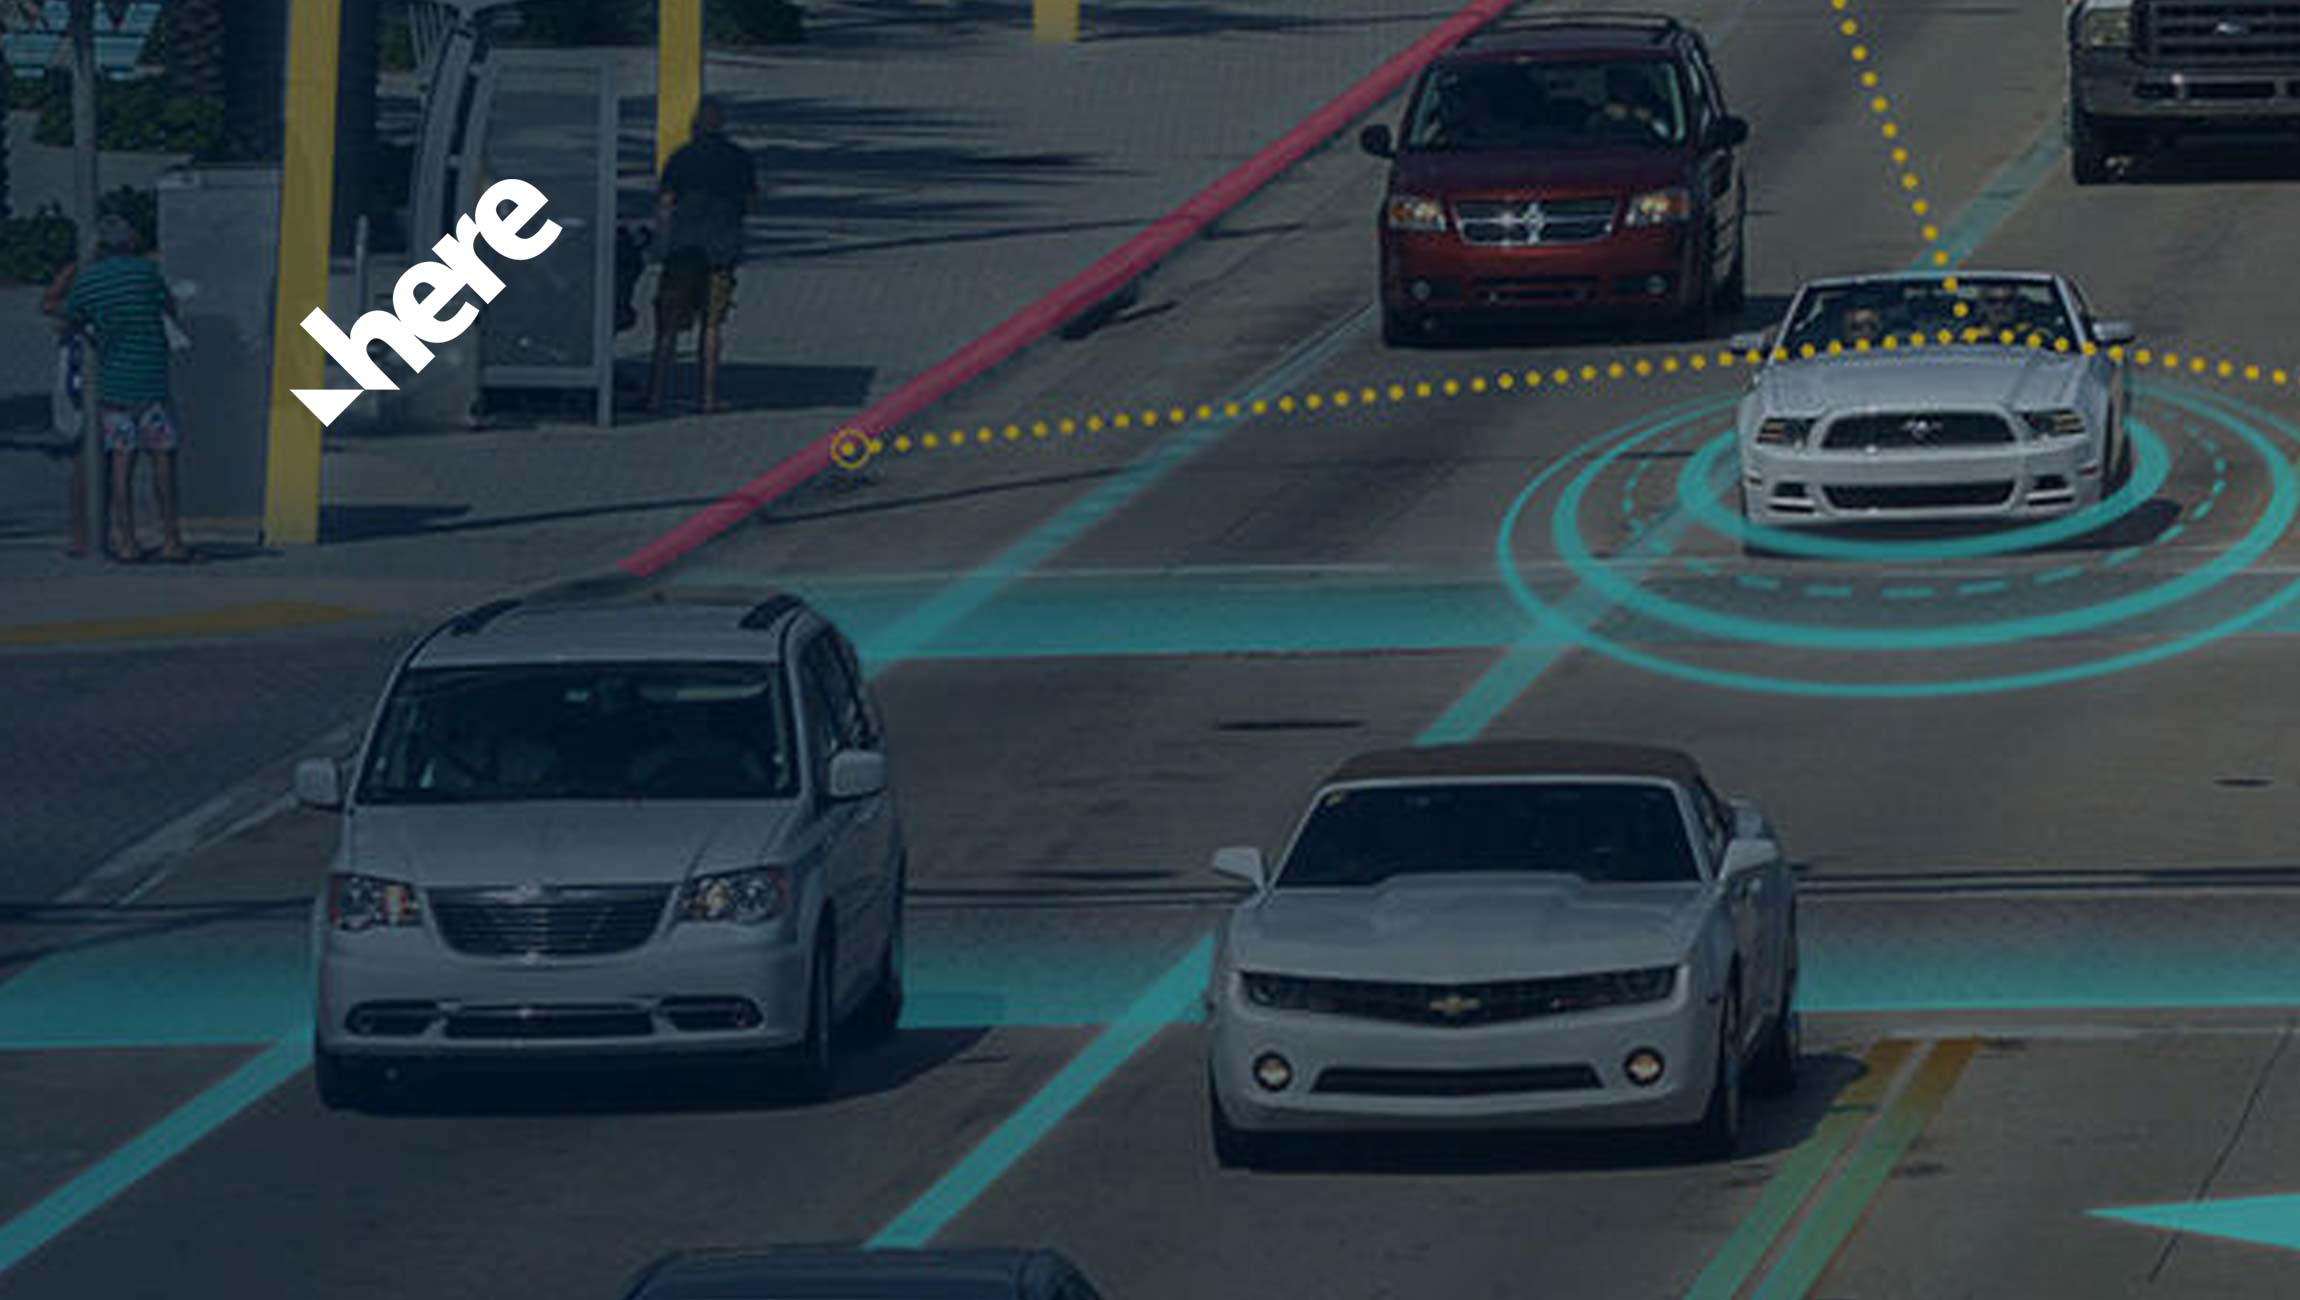 HERE Platform Enables Hands Free Driving For Ford Customers